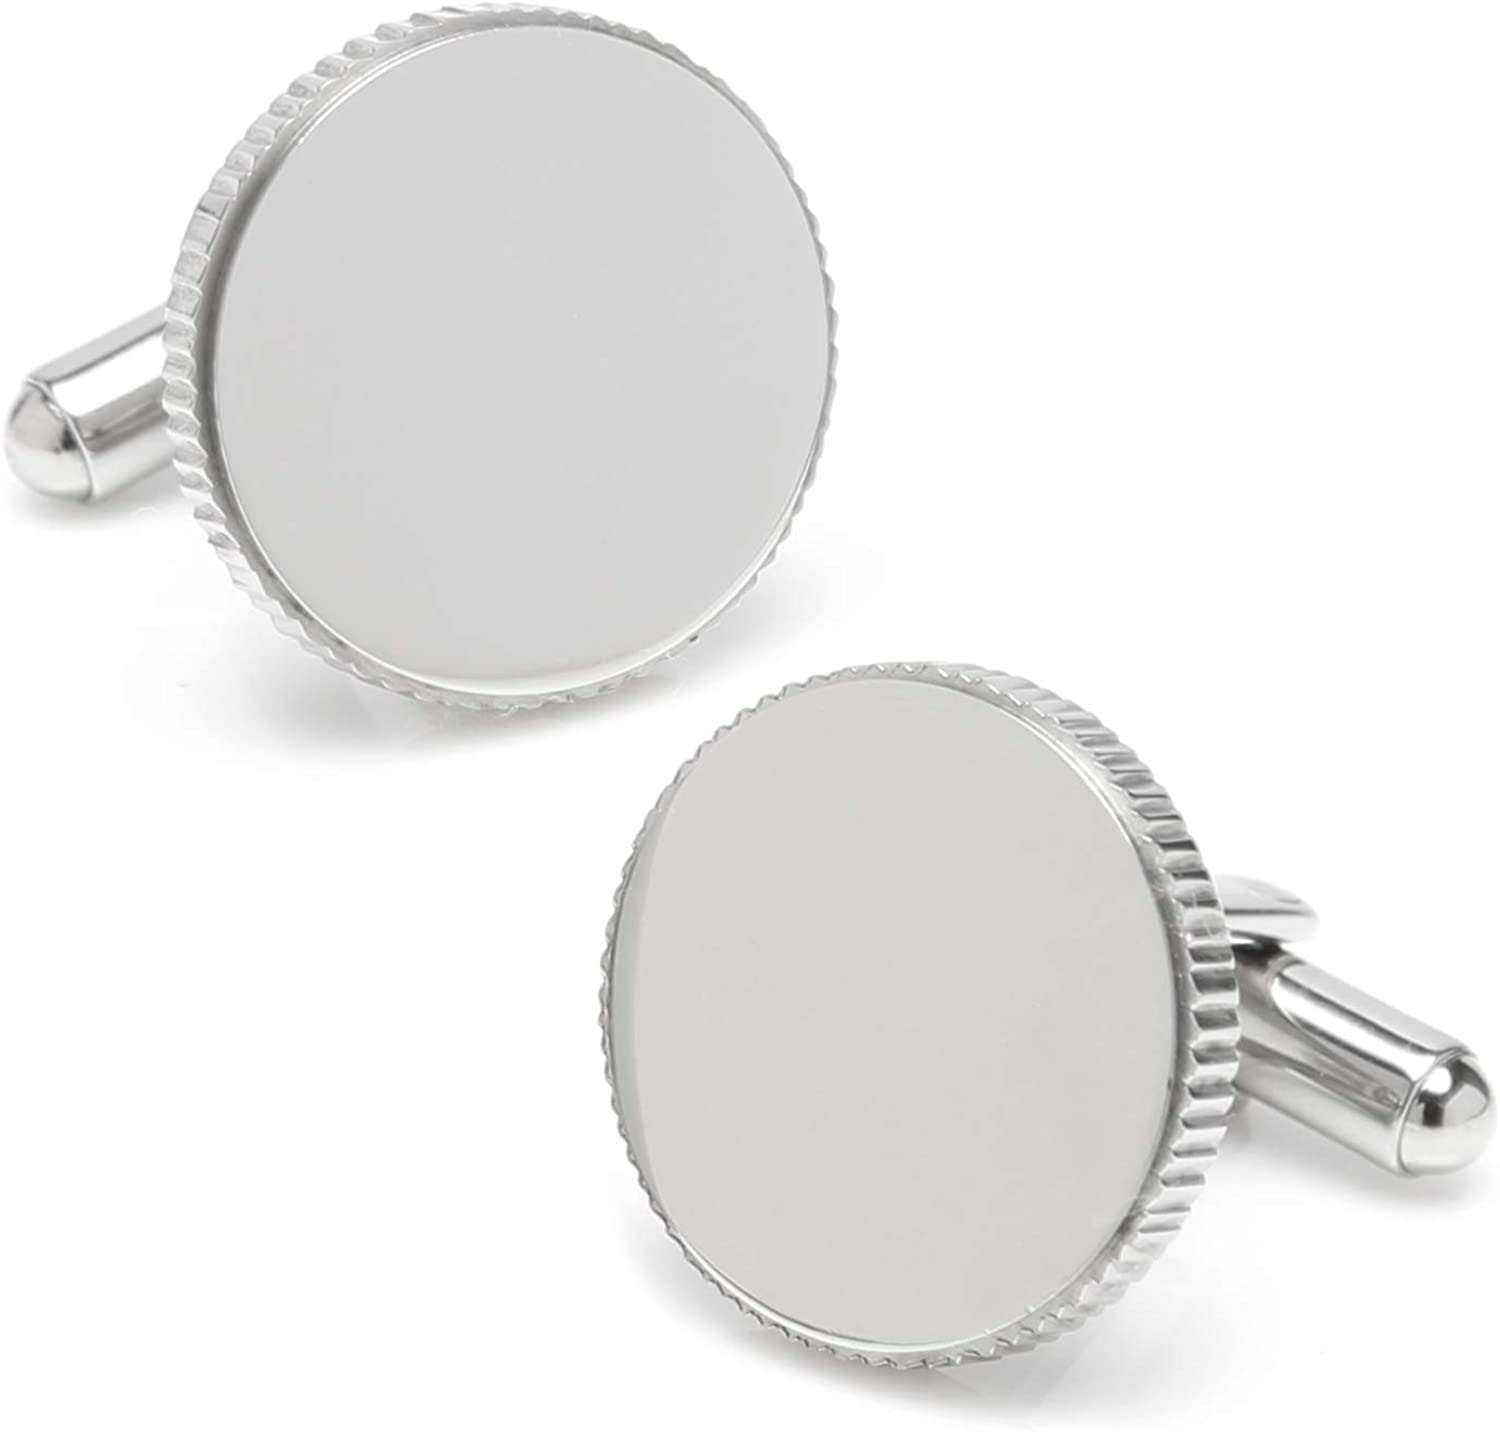 Ox and Bull Trading Co Coin Edge Stainless Steel Cufflinks